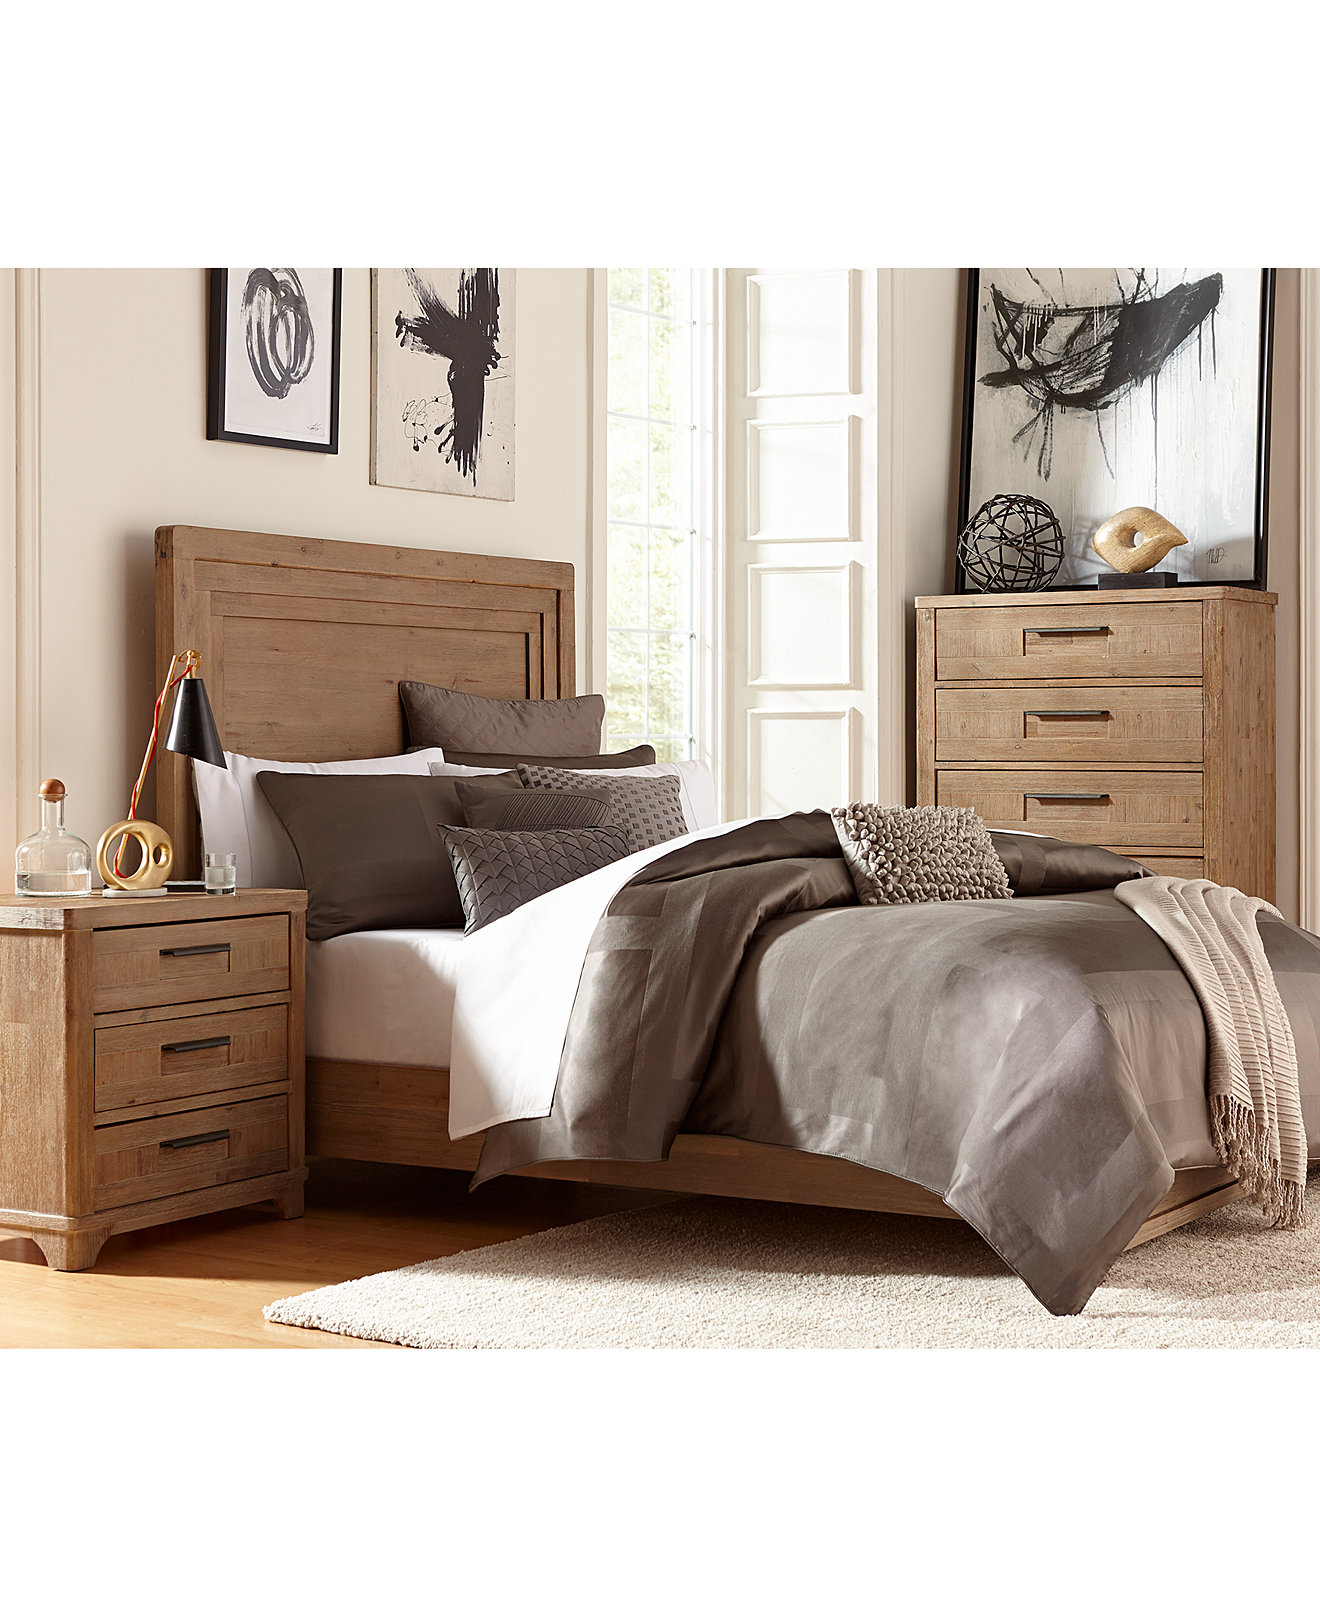 Master Bedrooms Furniture Master Bedroom Sets Shop For And Buy Master Bedroom Sets Online